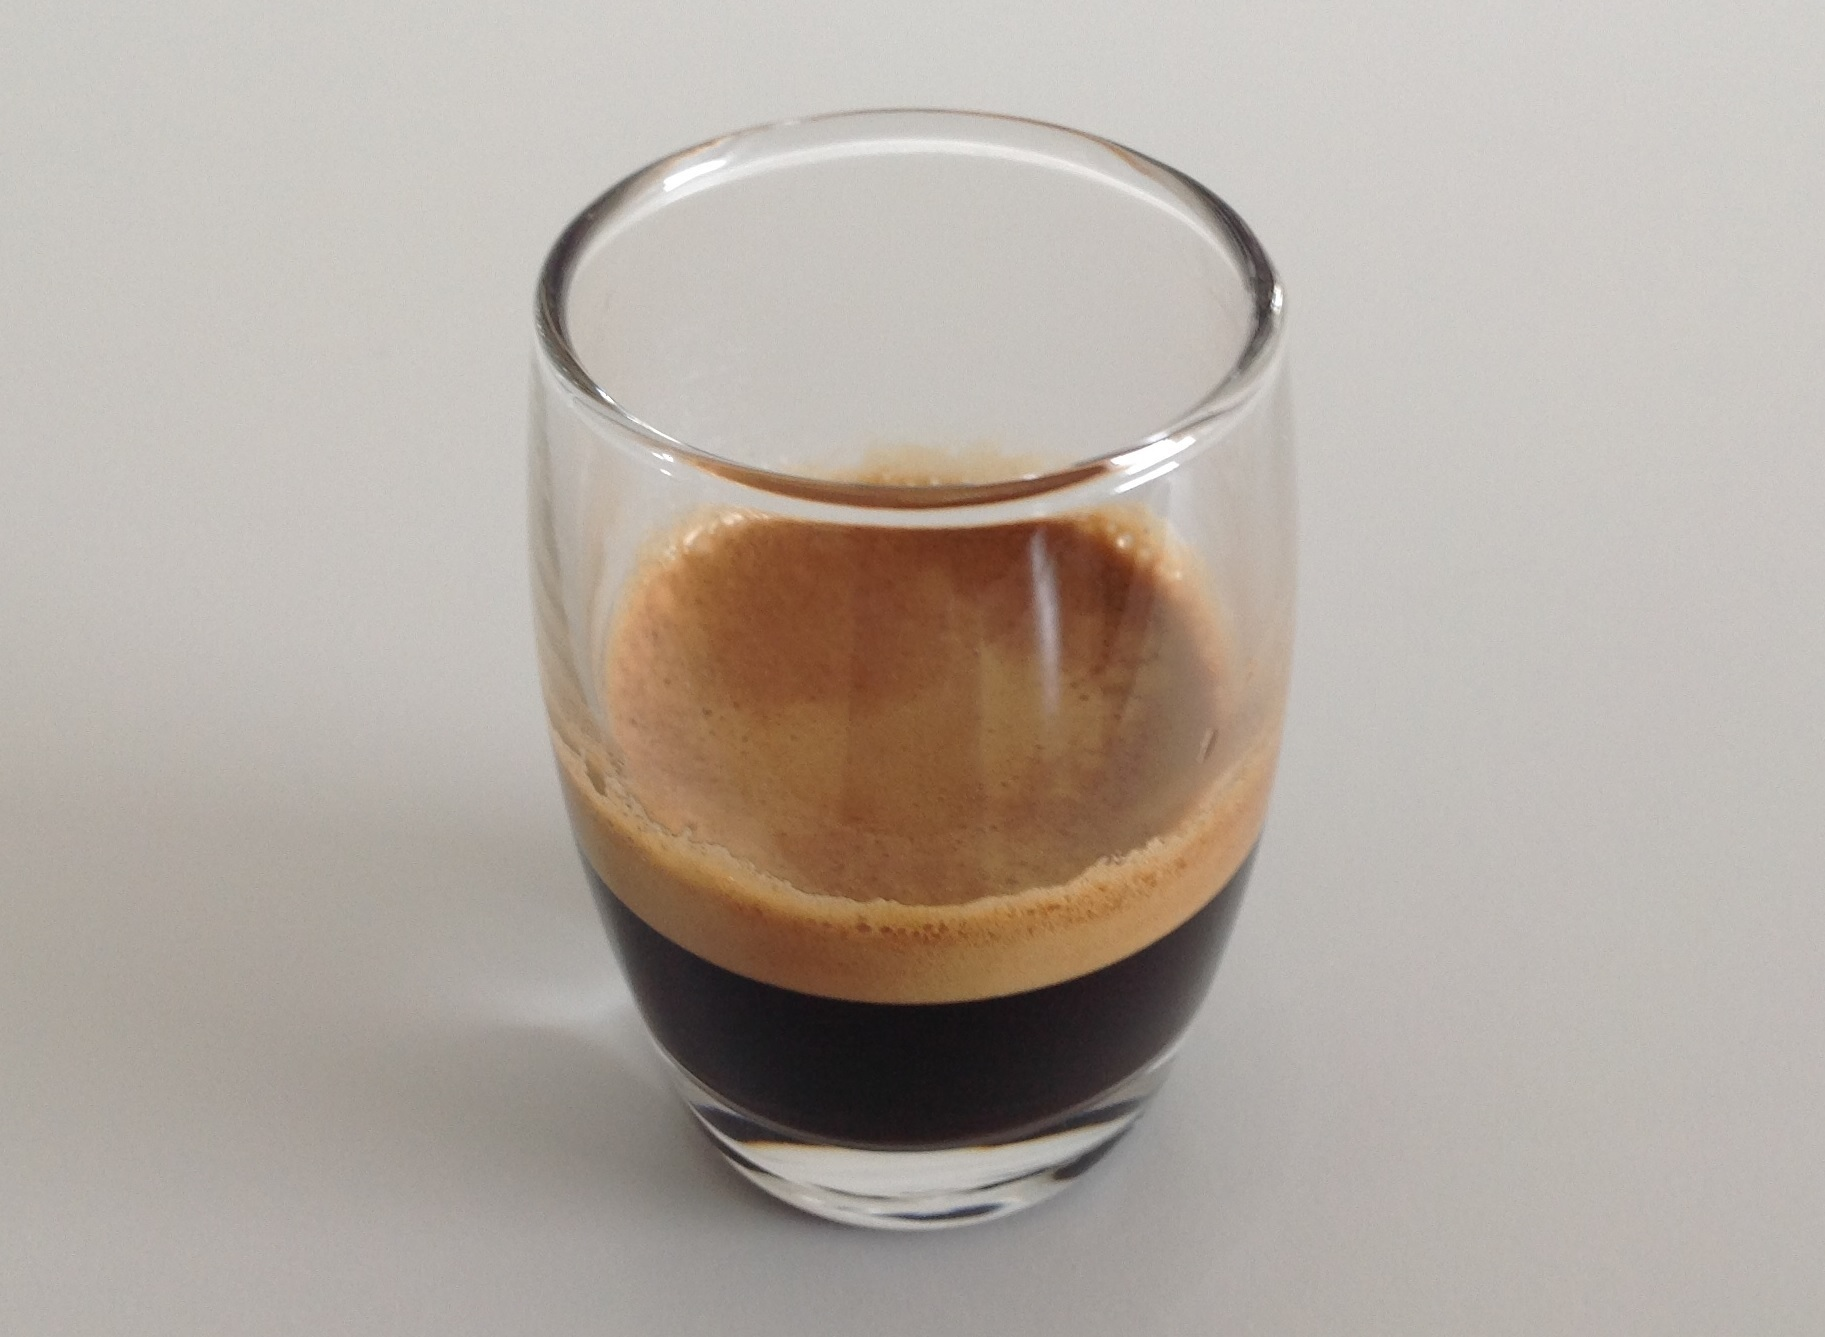 Ristretto in a glass